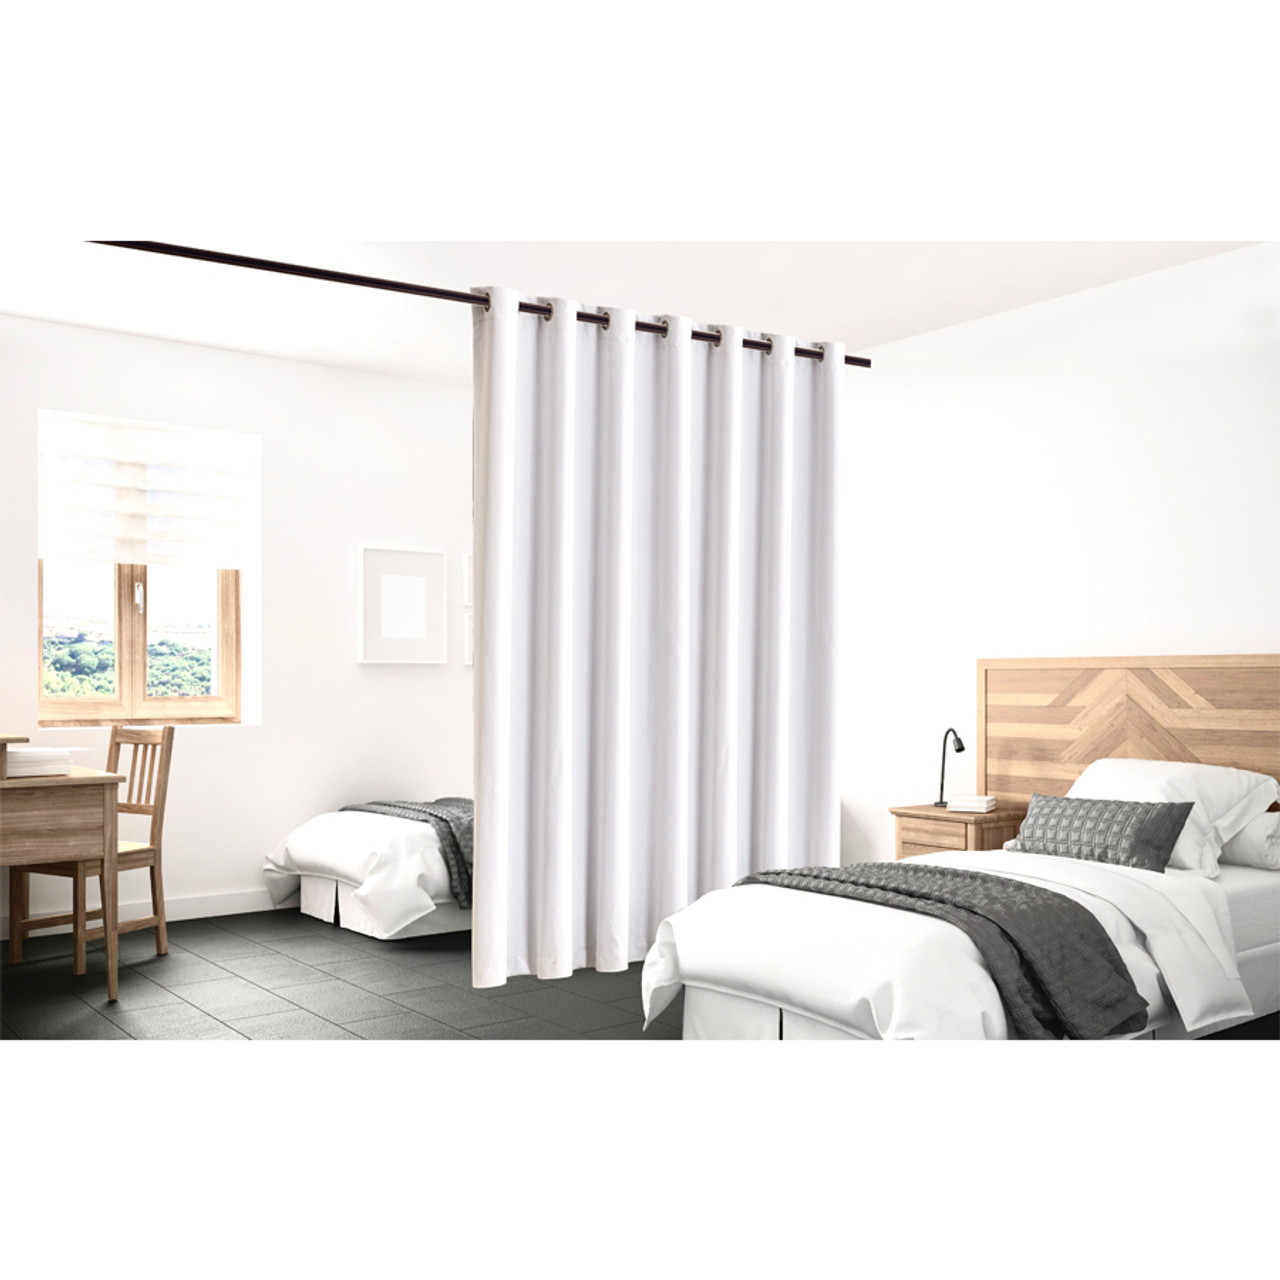 Blackout Room Divider Curtain Panel Thermal Insulated White Color in California, New York, New York City, Los Angeles, San Francisco, Pennsylvania, Washington DC, Virginia, Maryland